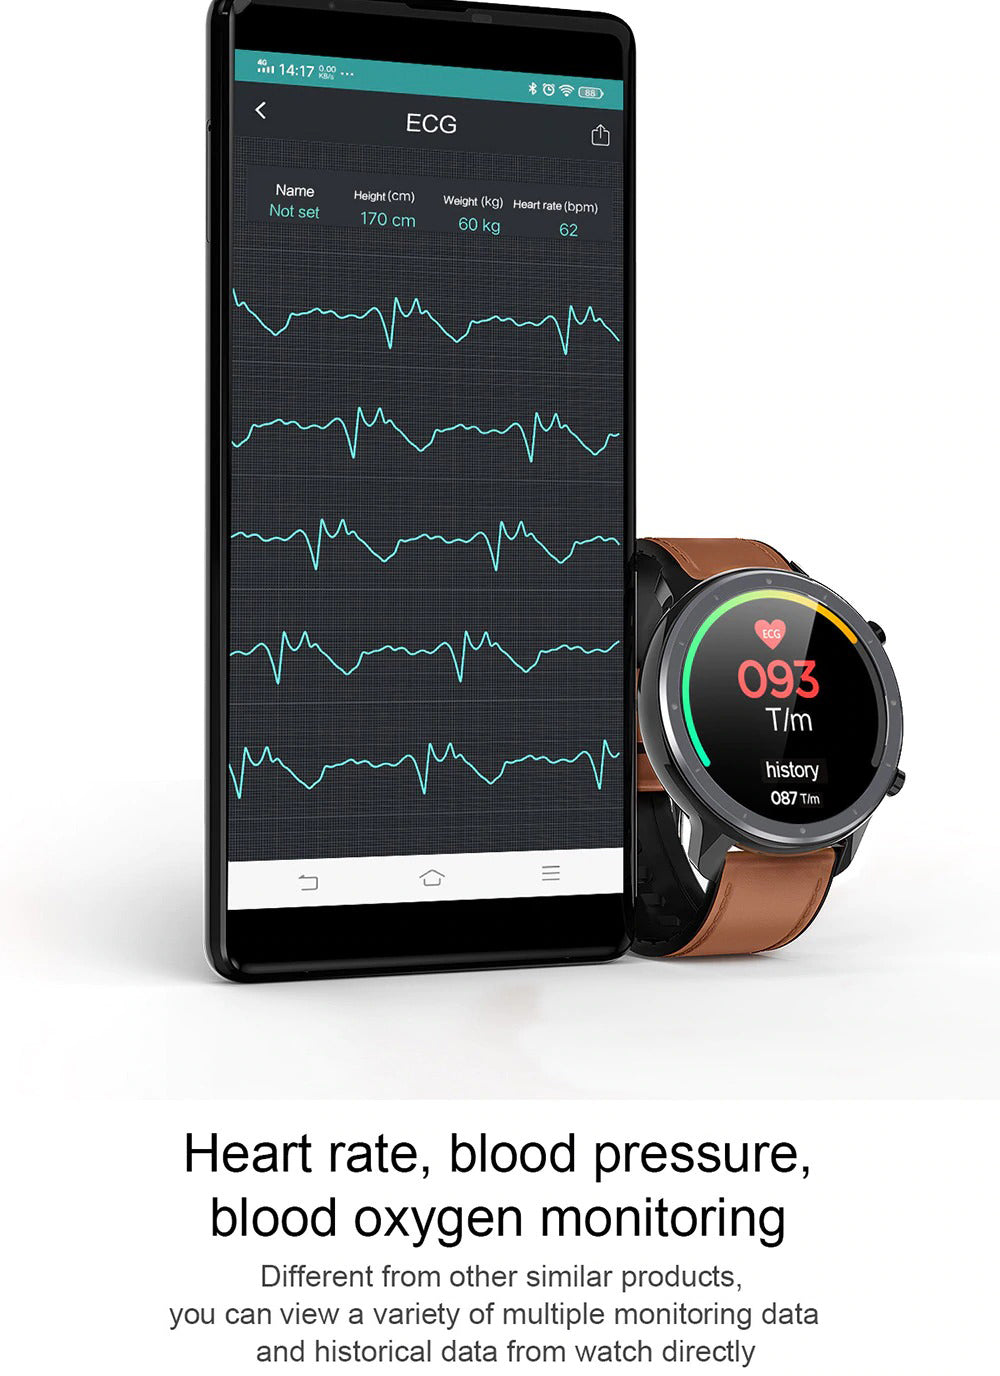 X9 Beretta Smart Watch Heart Rate Blood Pressure Blood Oxygen Monitoring